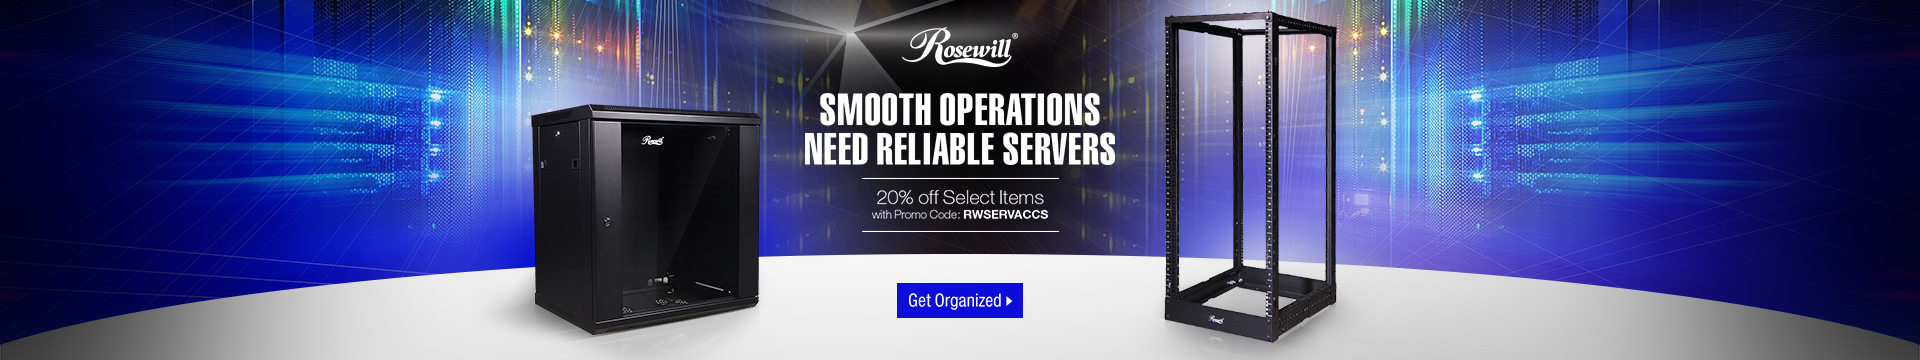 Rosewill SMOOTH OPERATIONS NEED RELIABLE SERVERS